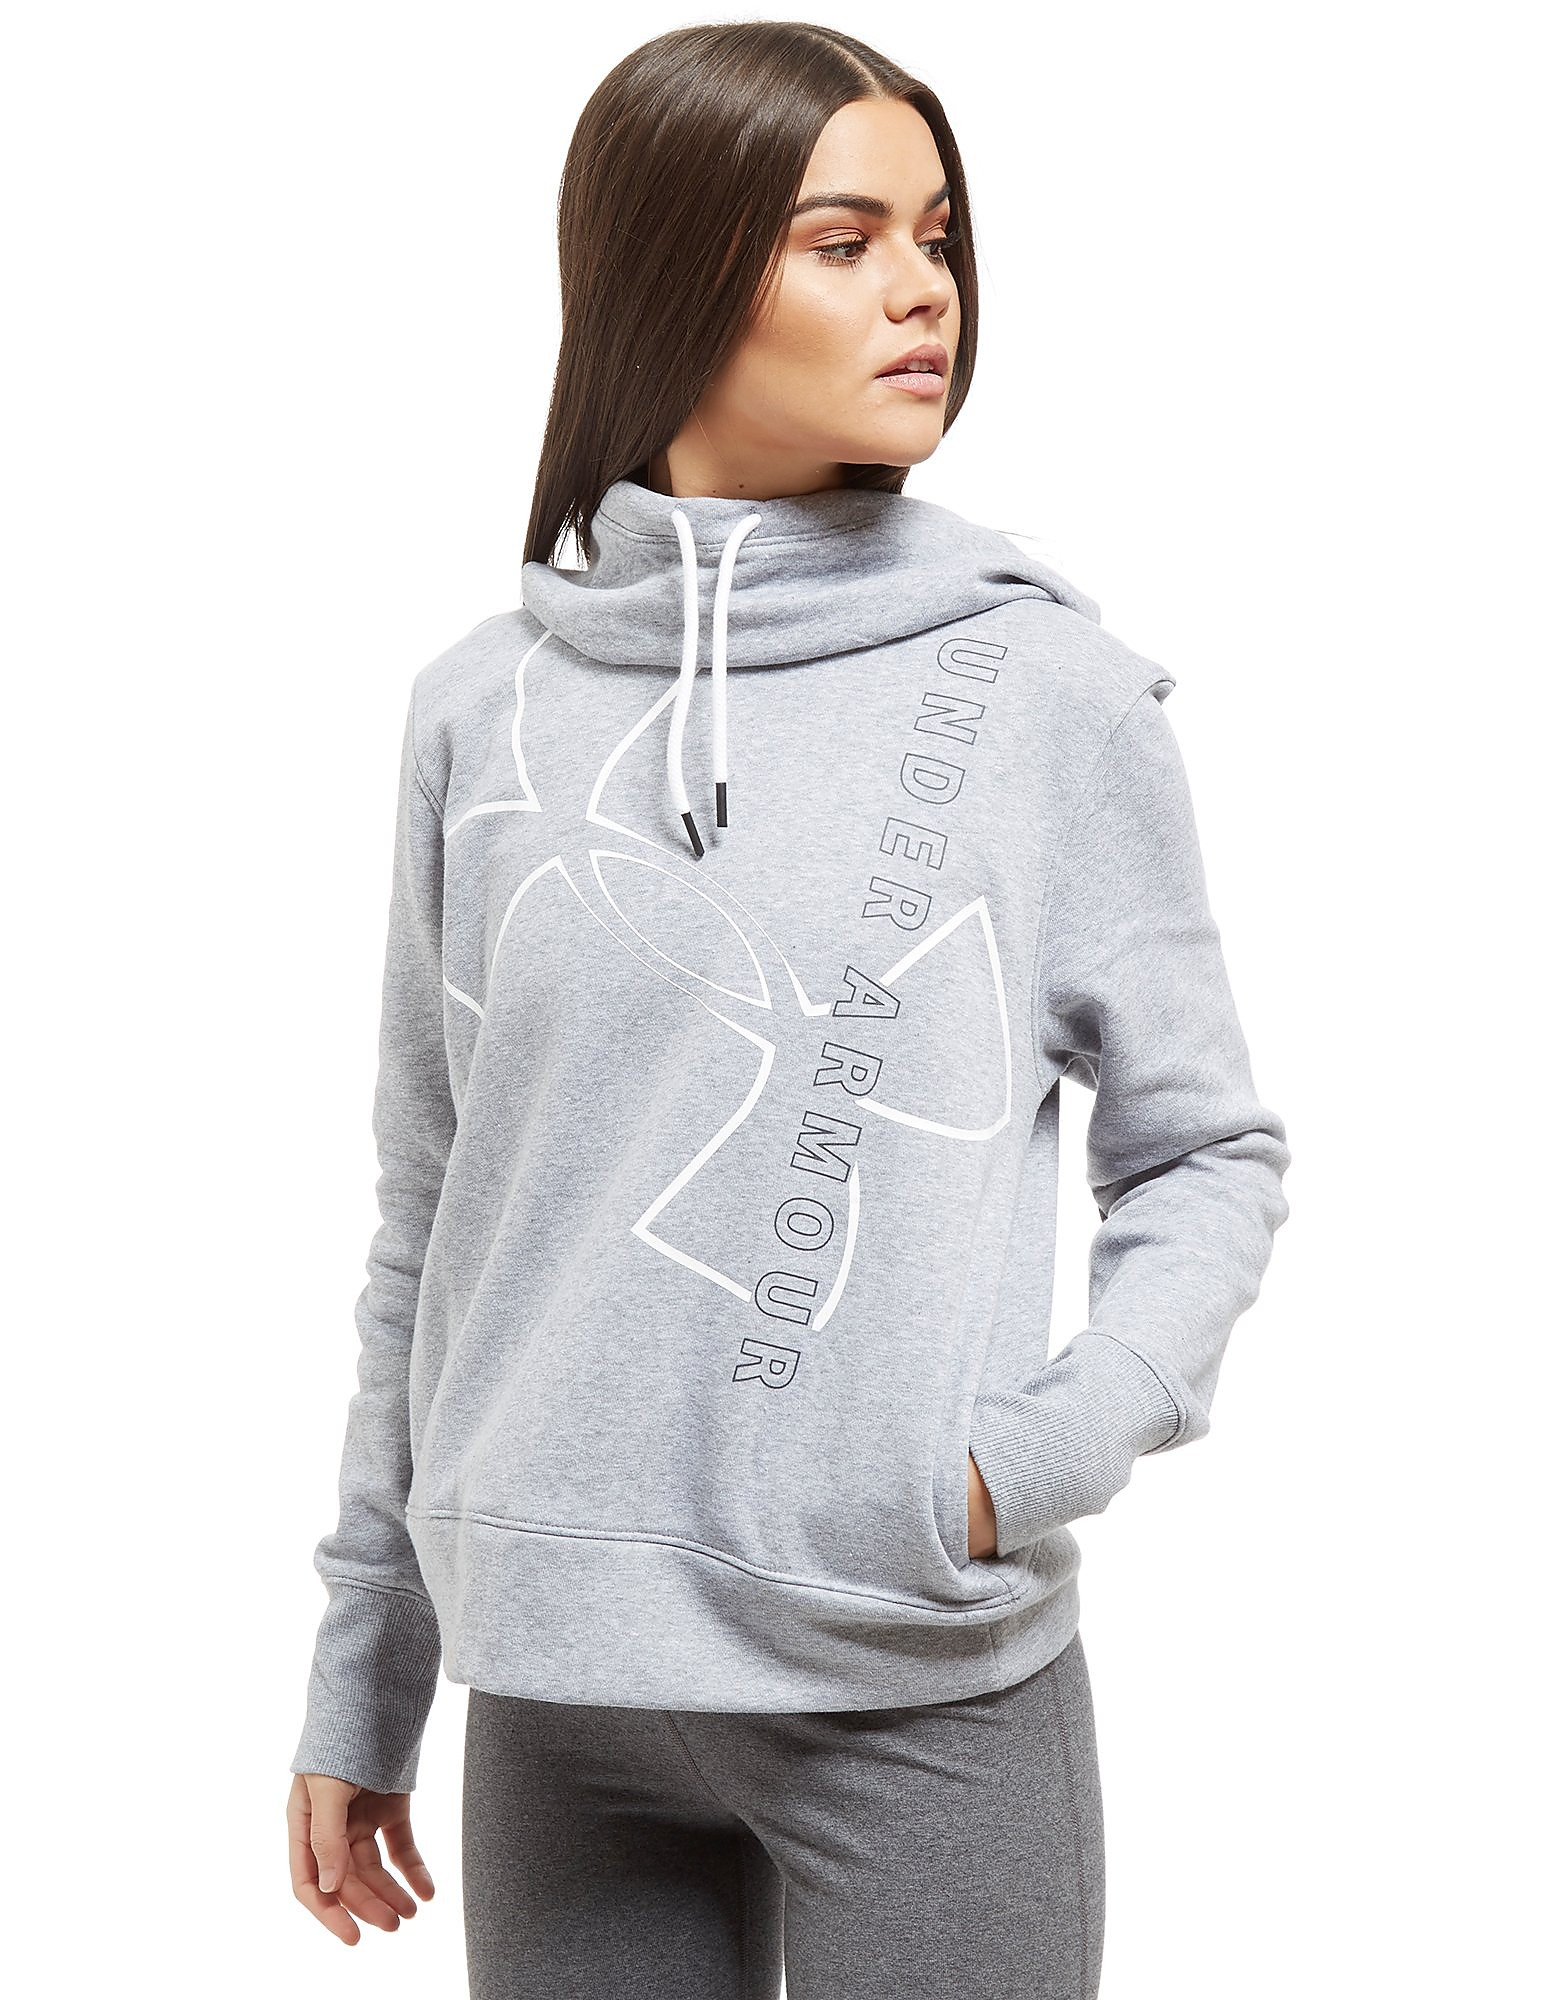 Under Armour Women's Graphic Overhead Hoodie